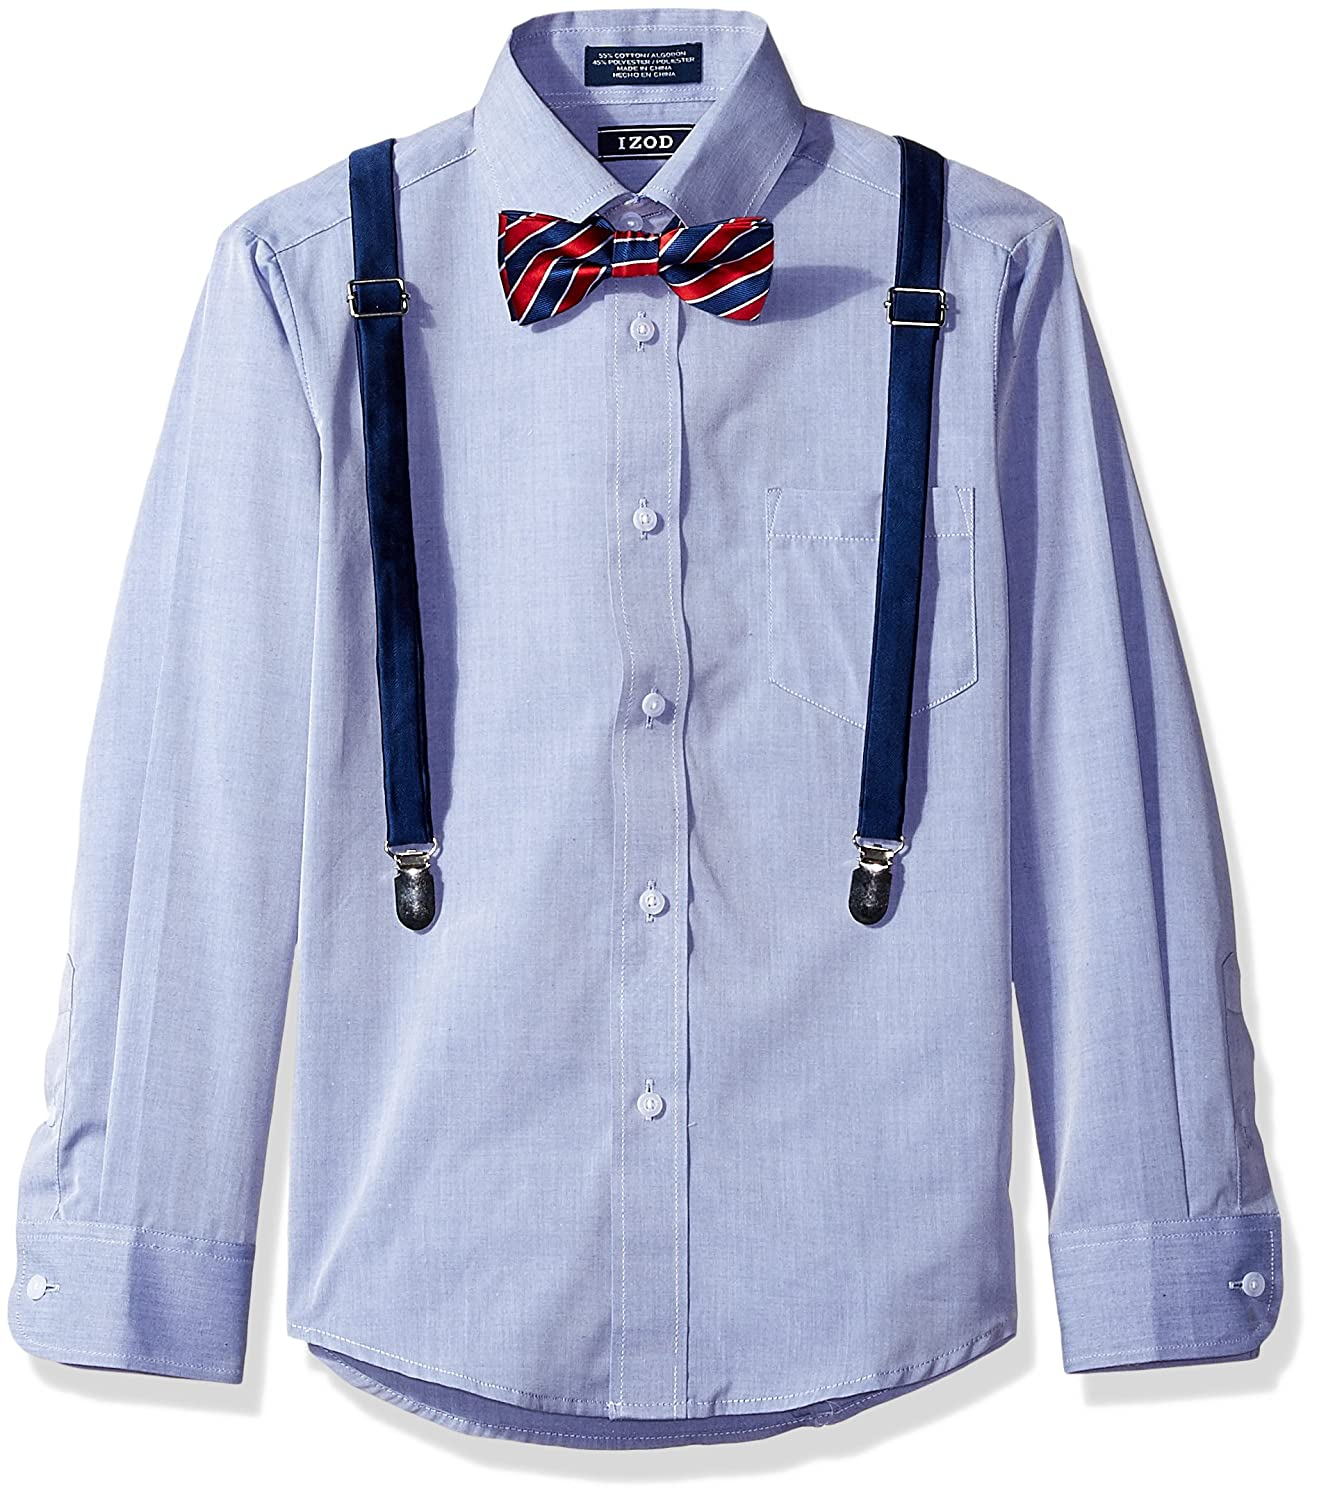 1930s Childrens Fashion: Girls, Boys, Toddler, Baby Costumes Izod Kids Big Boys Long Sleeve Fancy Chambray Shirt with Bow Tie and Suspender Set $25.83 AT vintagedancer.com